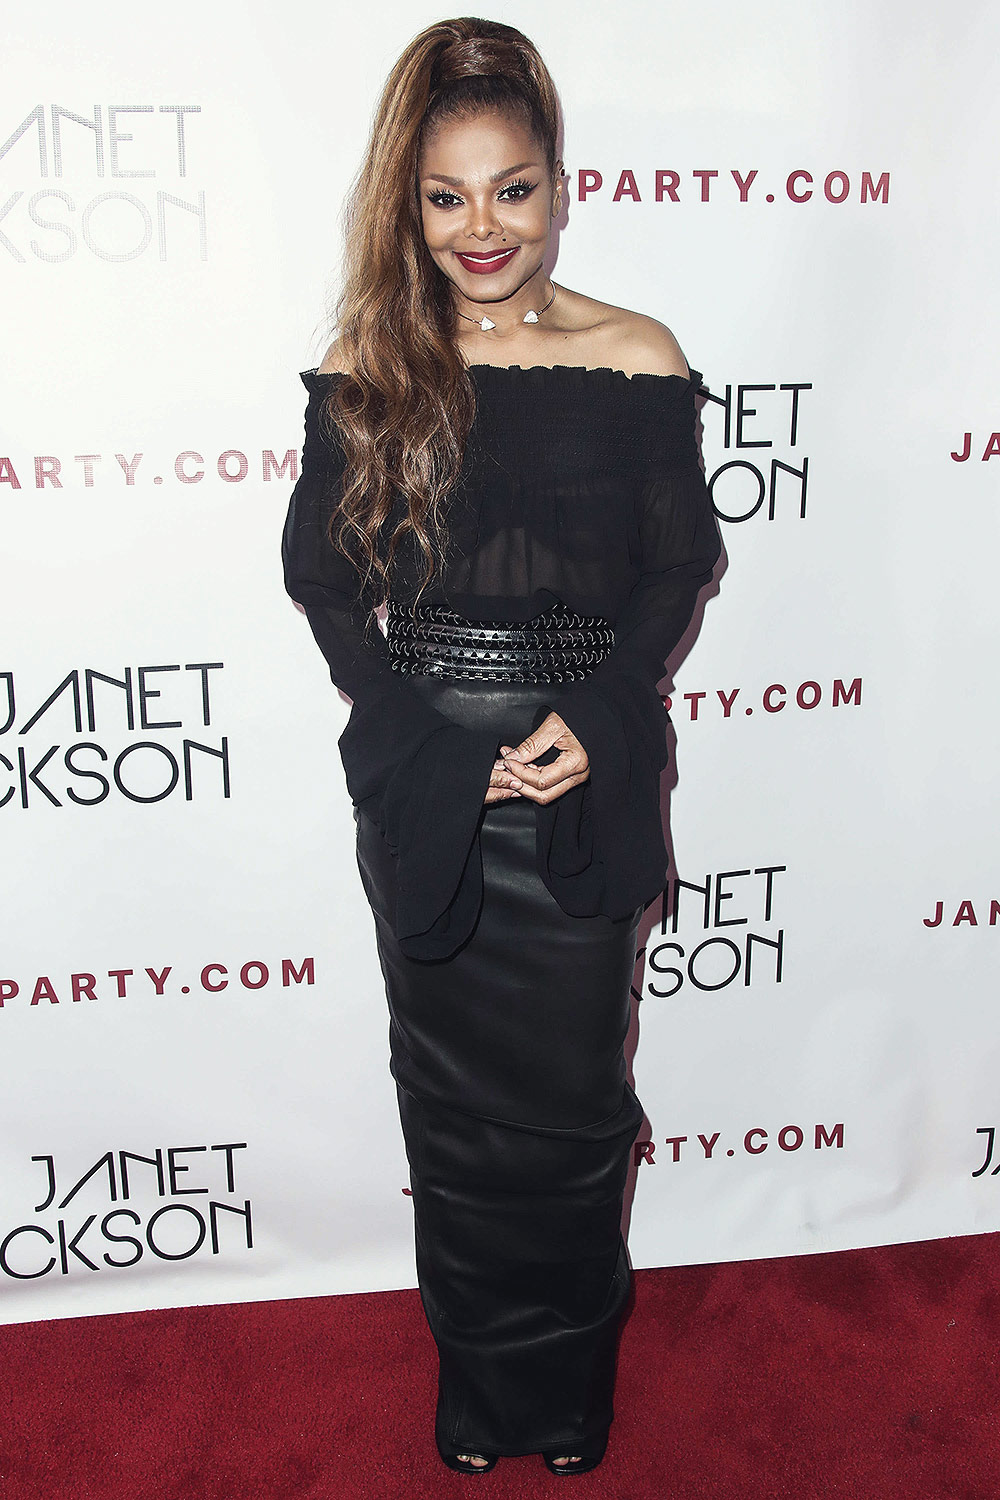 Janet Jackson at the aftershow party for her World Tour